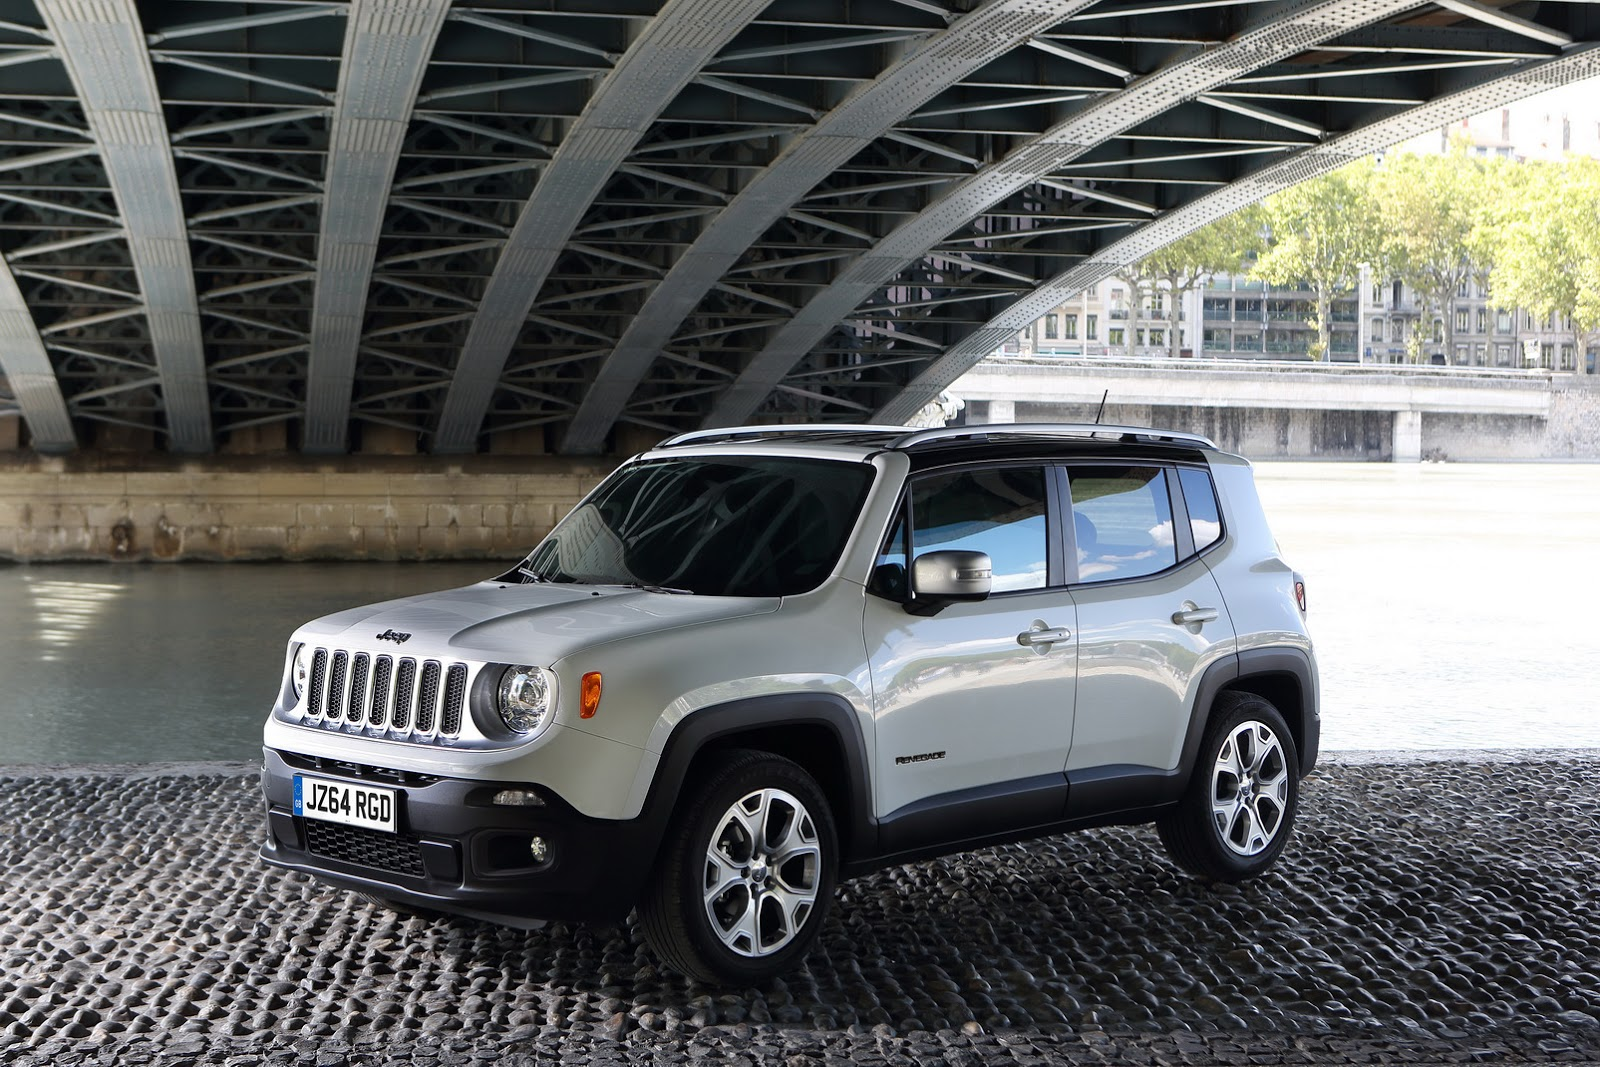 New Jeep Renegade Starts from £16,995 in the UK ...